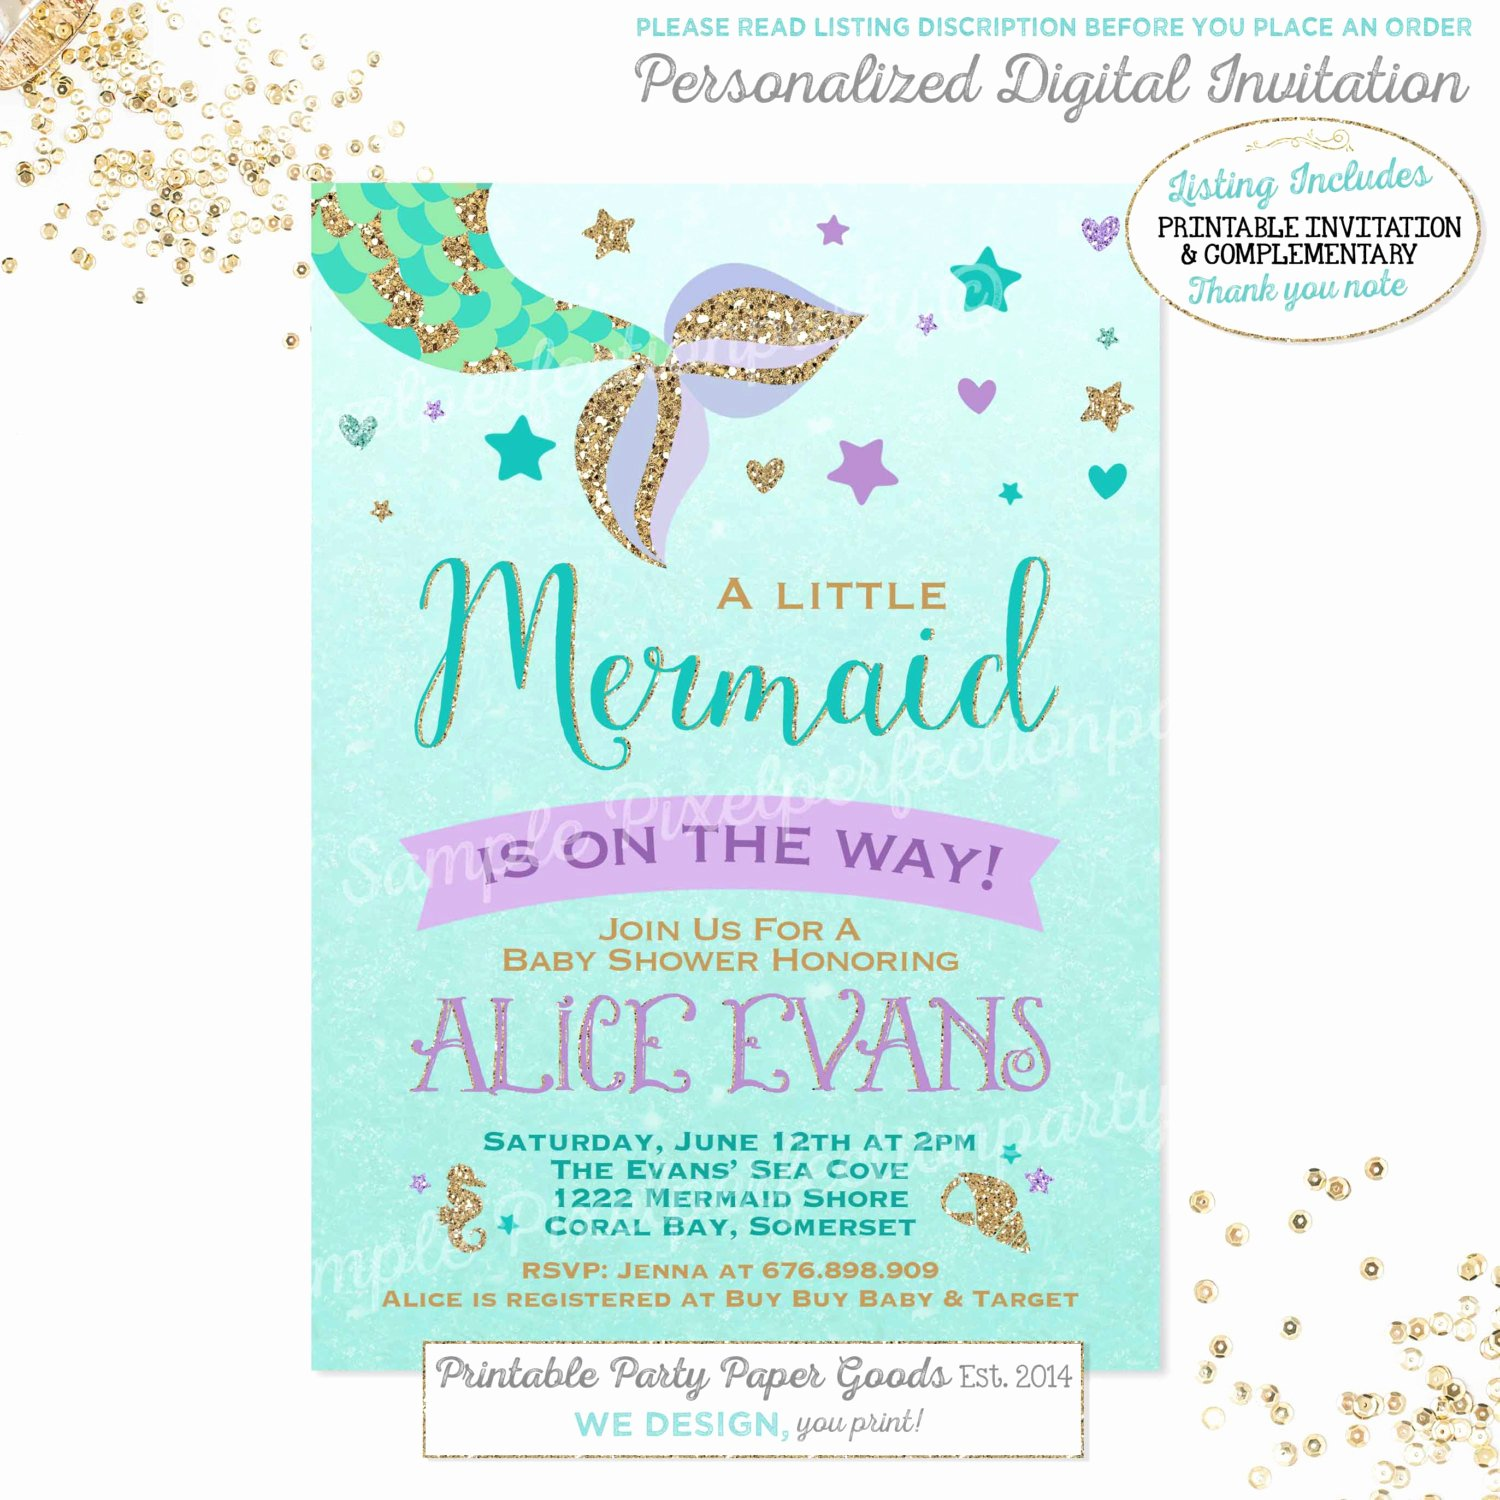 Mermaid Baby Shower Invitations Unique Mermaid Baby Shower Invitation Little Mermaid Baby Shower